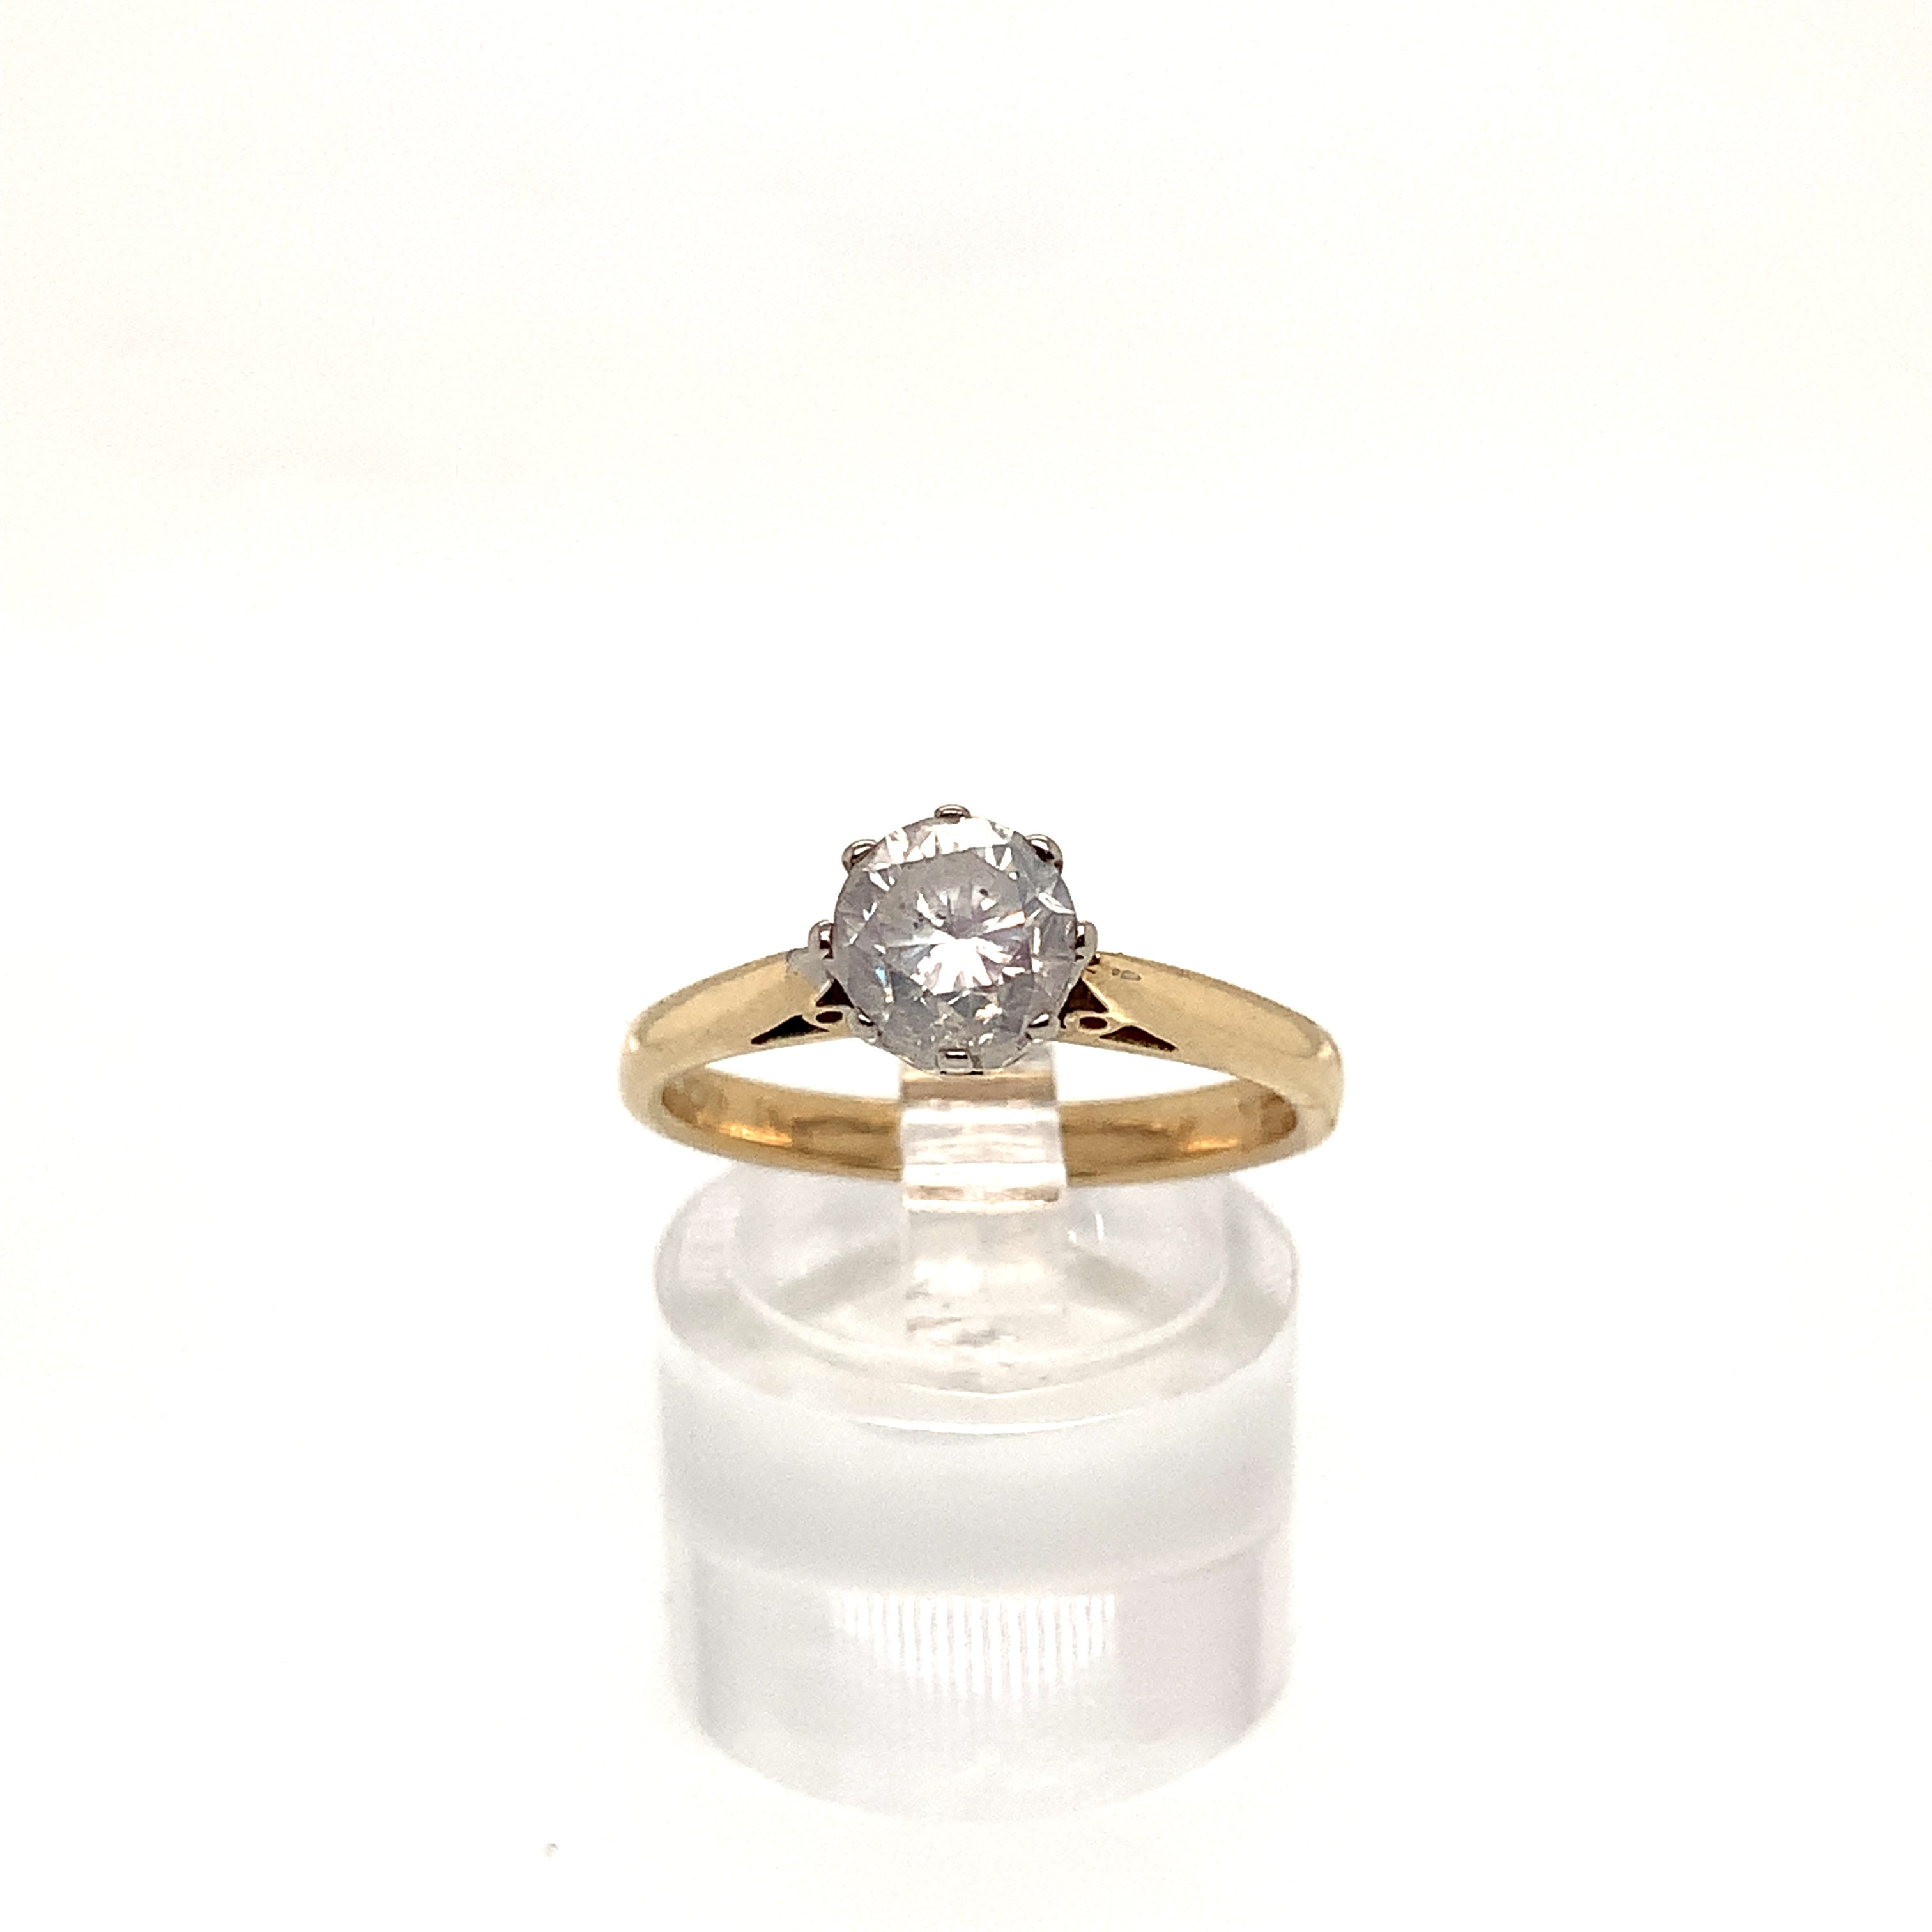 18ct Yellow Gold 8 Claw Rex Set Diamond Solitaire